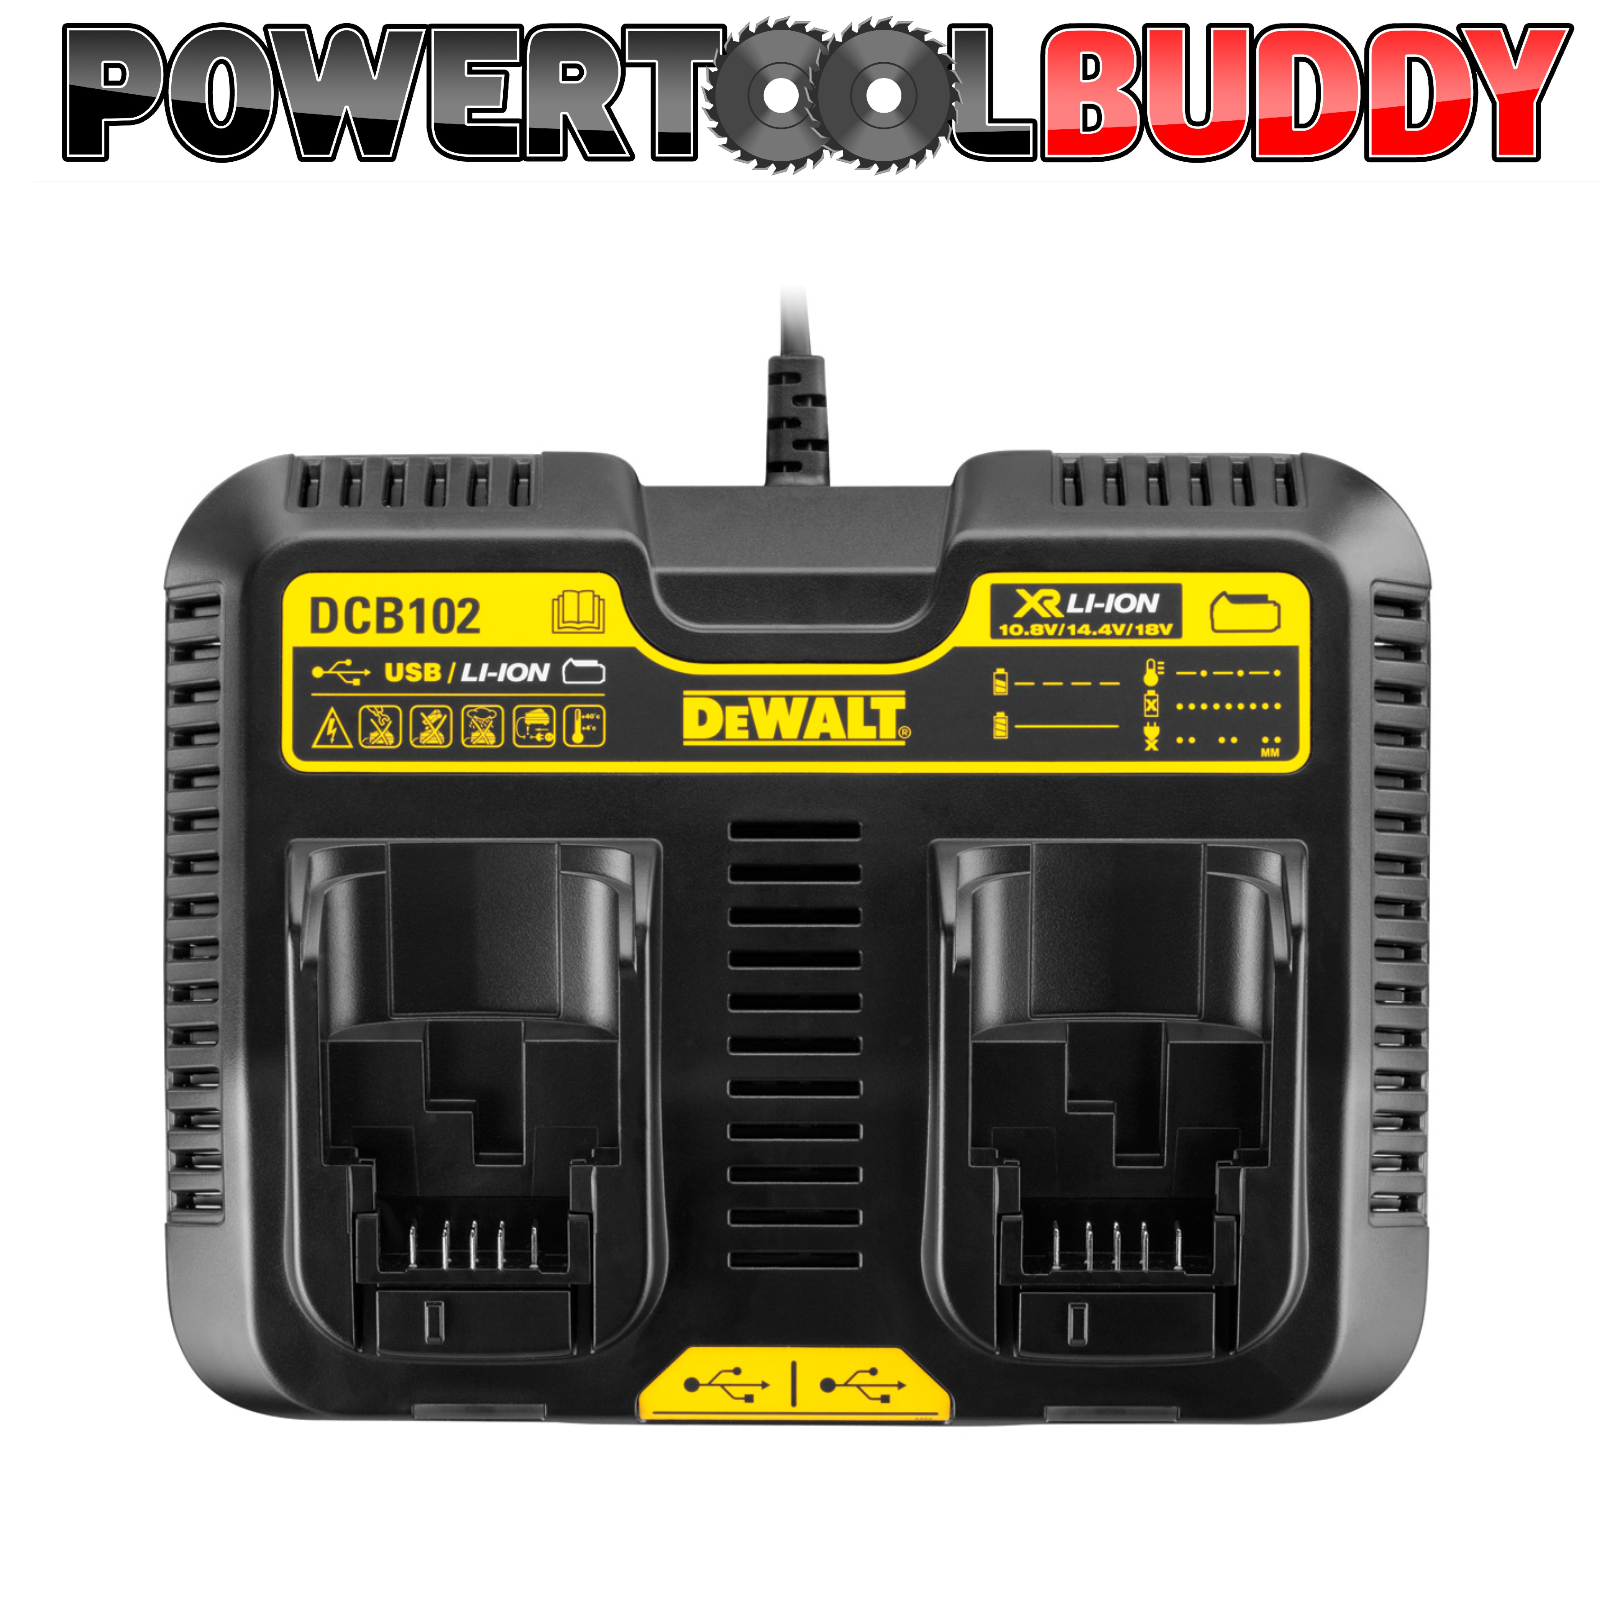 Dewalt DCB102 XR 10.8 -18volt Dual Port Charger With USB Next Day Delivery